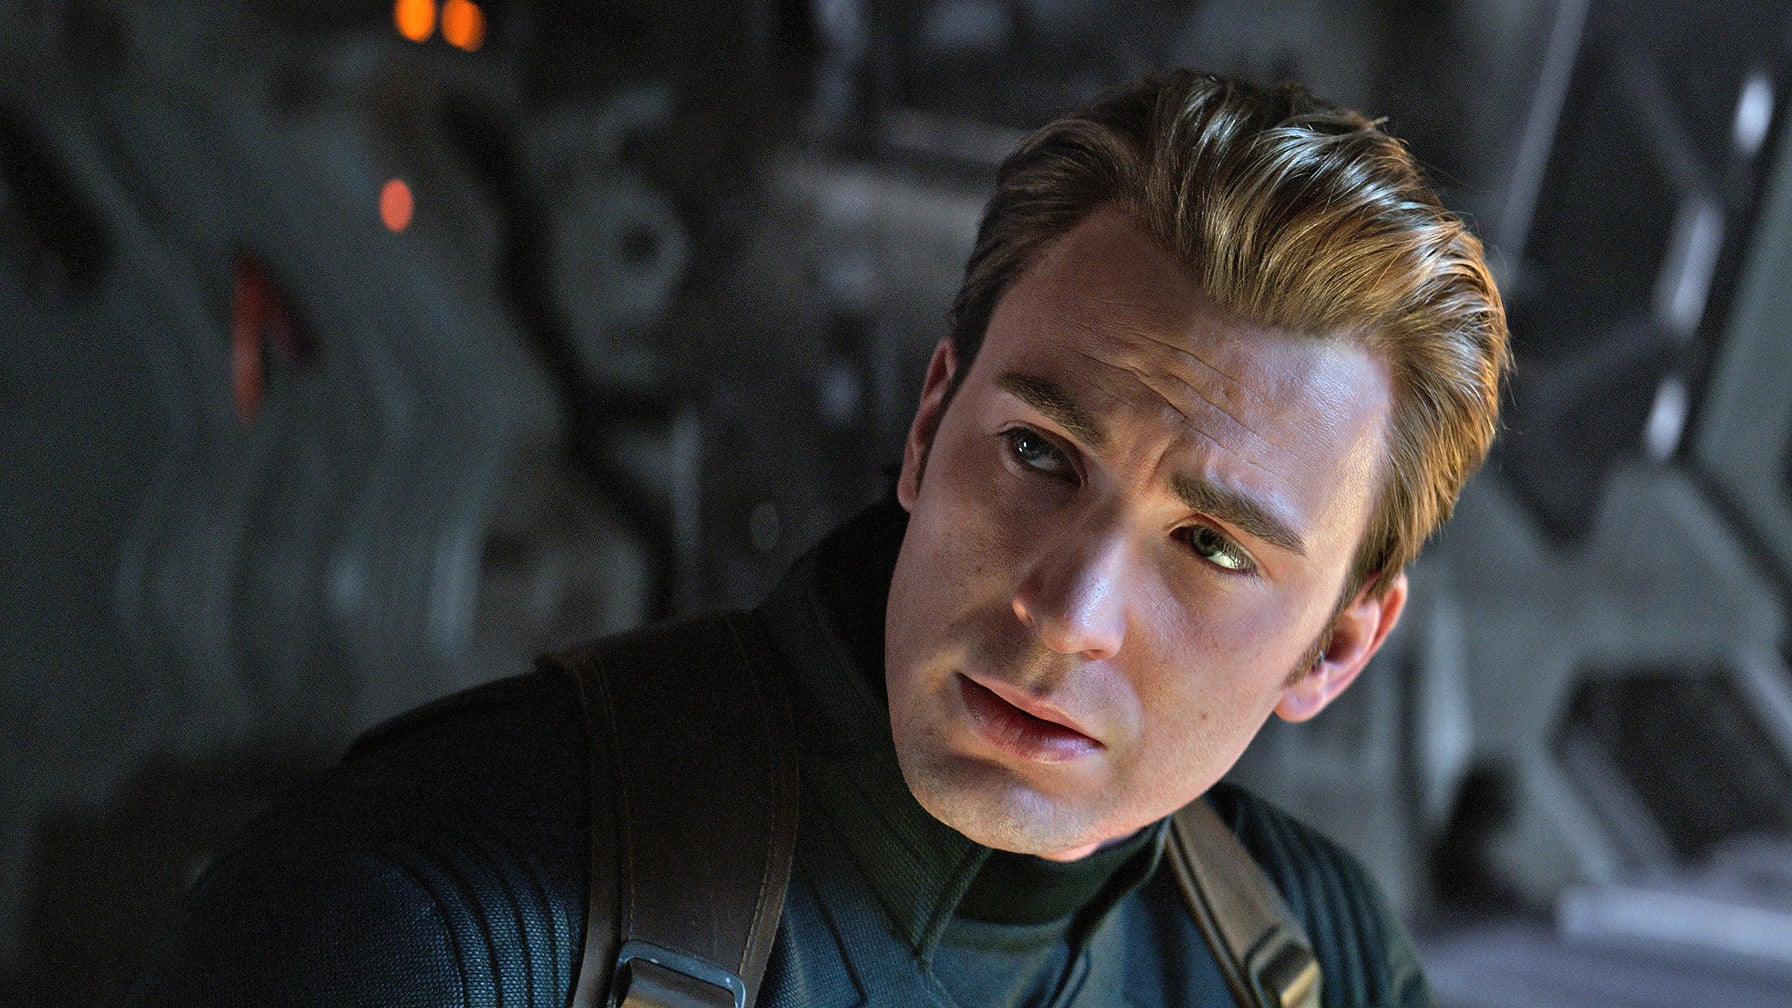 Avengers: Endgame Made Over $1.7 Billion Globally During Its Opening Weekend, Breaking A Ton Of Box Office Records